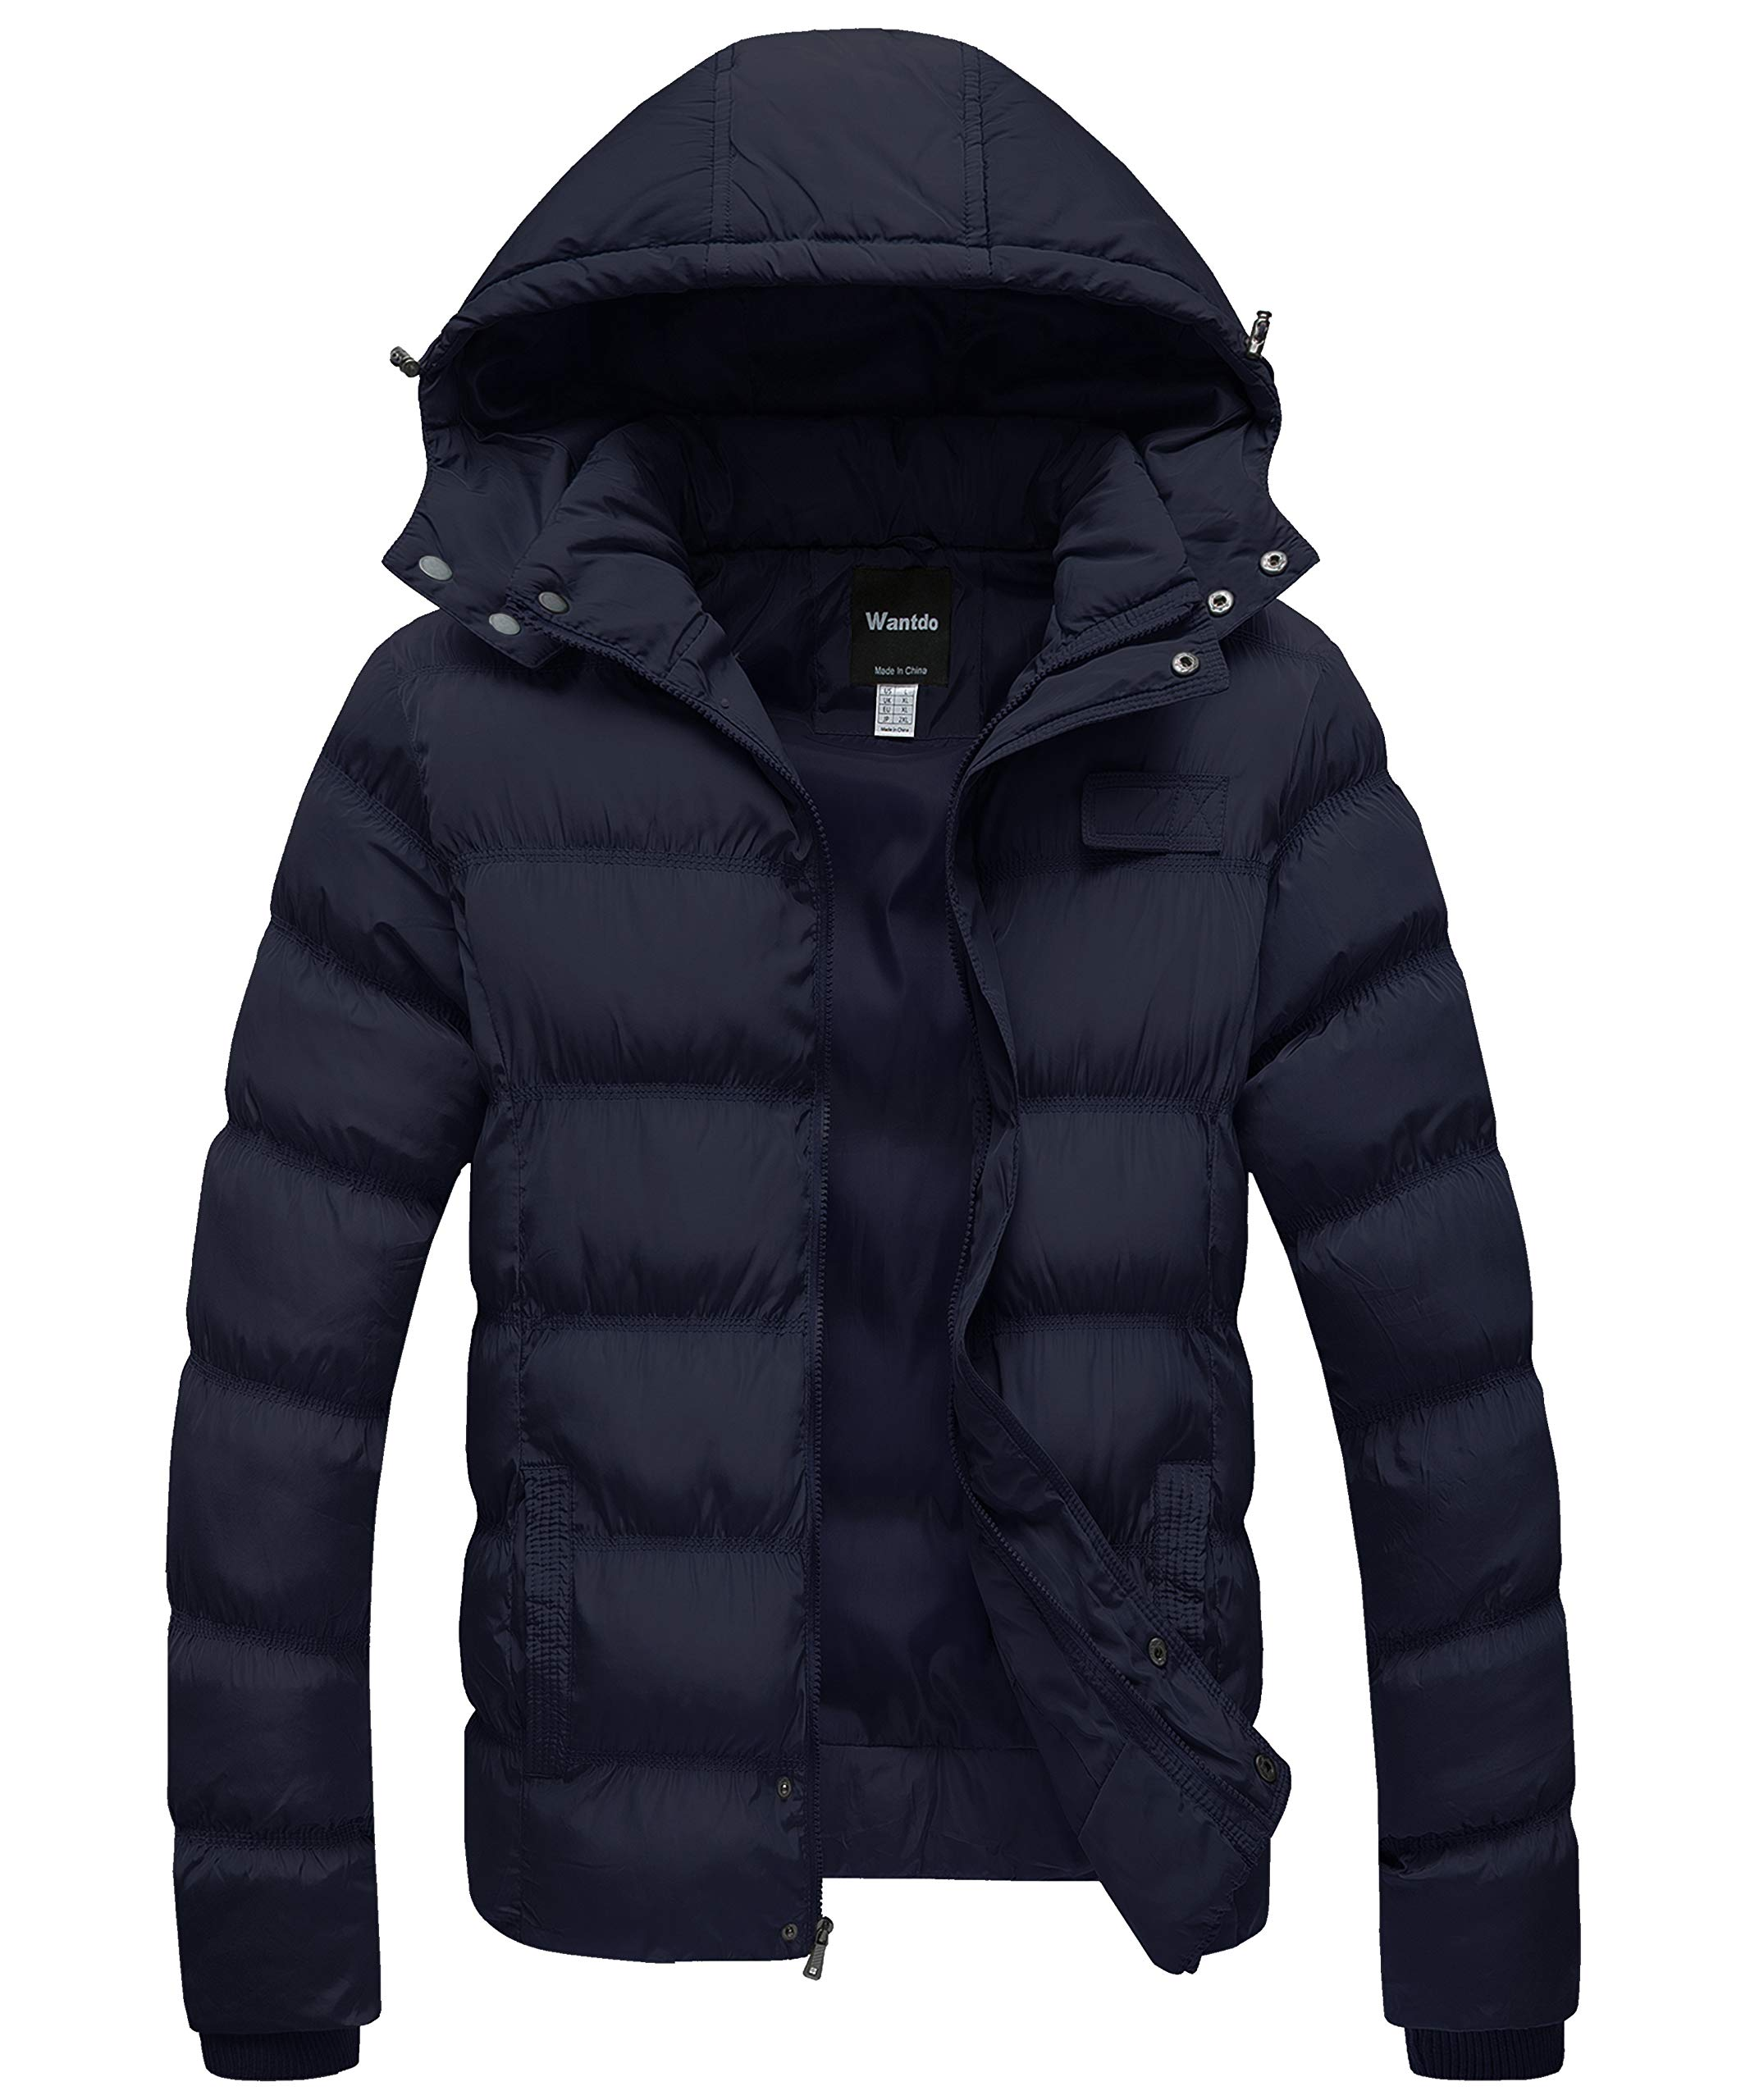 Wantdo Men's Winter Thicken Cotton Coat Warm Puffer Jacket with Removable Hood